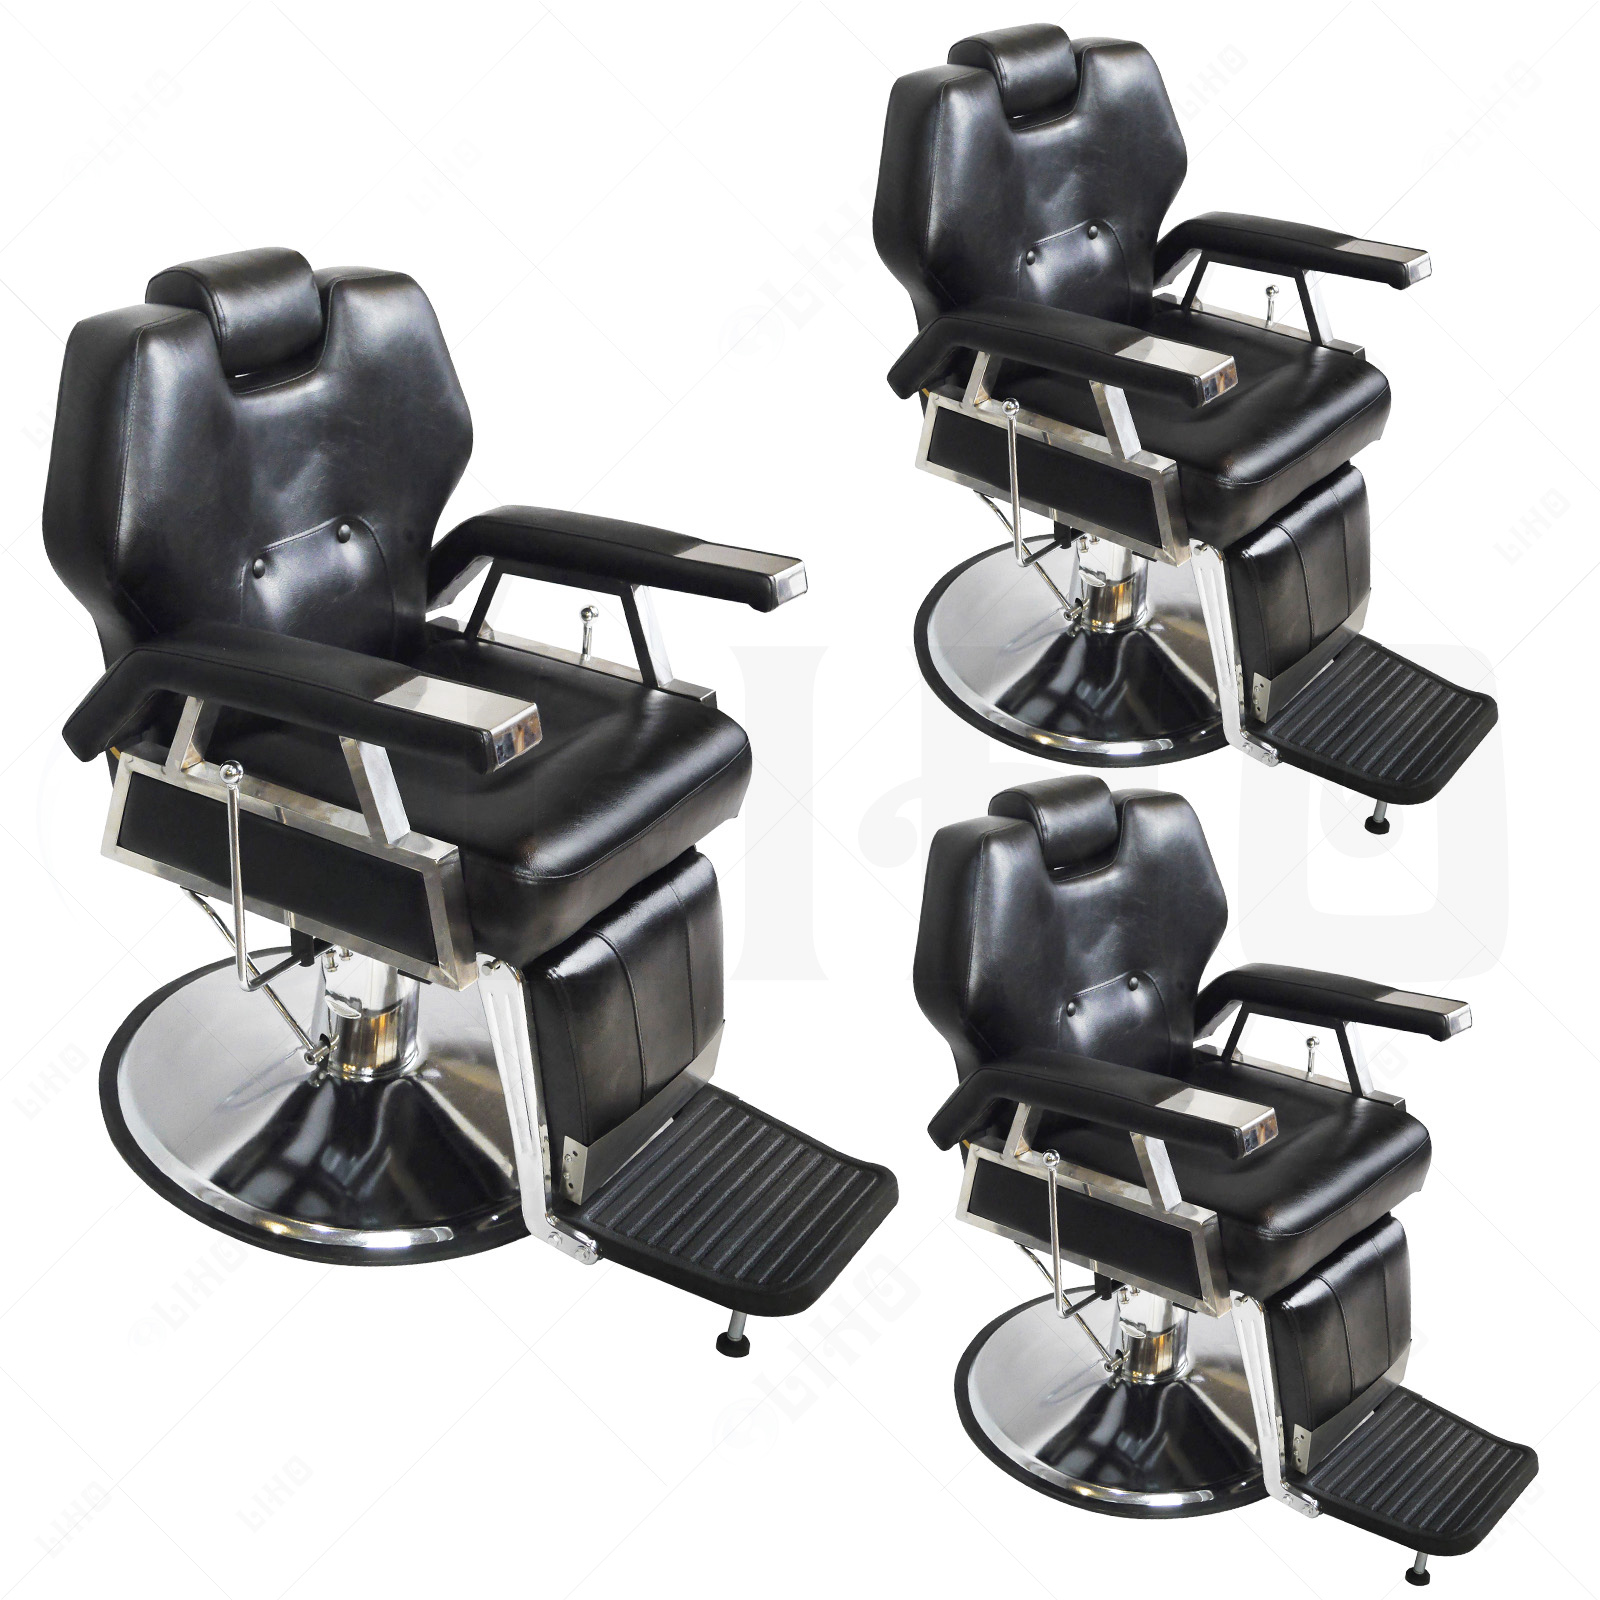 Hydraulic Chairs Hydraulic Reclining Barber Chair Salon Hair Styling Beauty